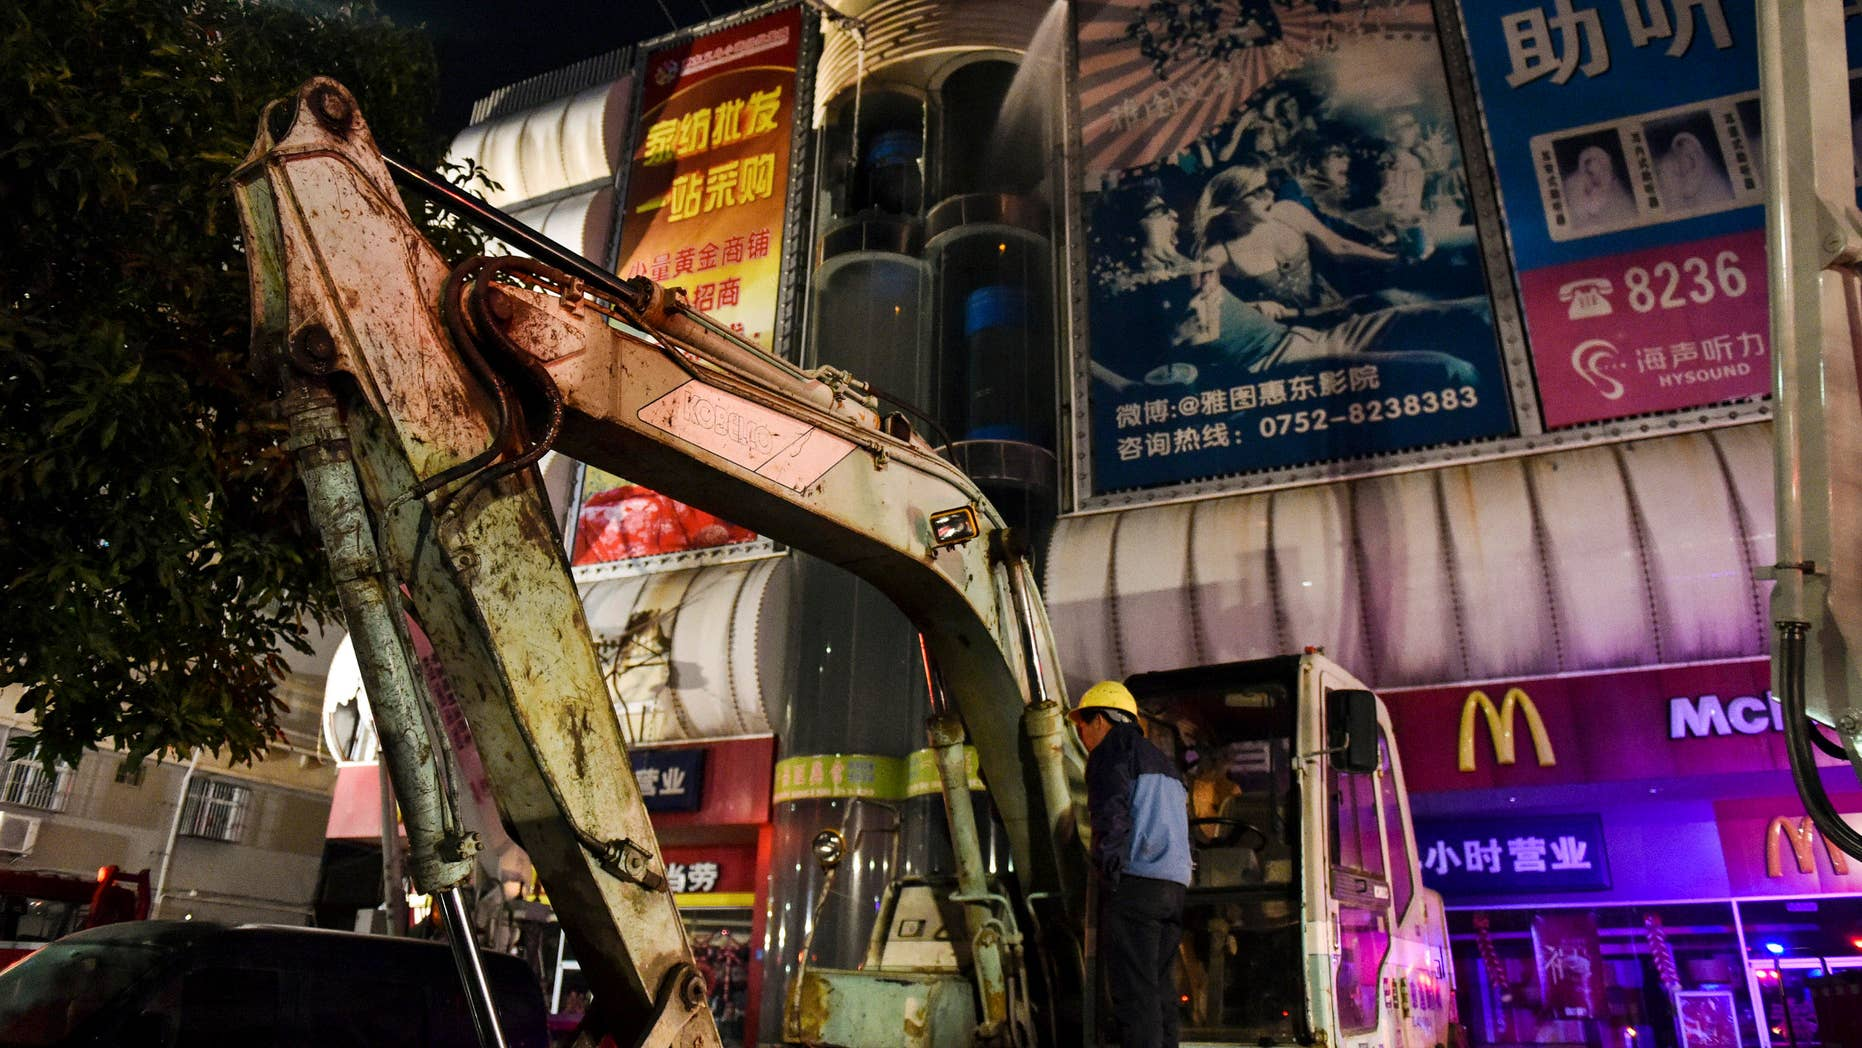 Feb. 6, 2015: China's Xinhua News Agency, fire fighters try to extinguish a fire at a wholesale market in Huidong County, southern Guangdong province.